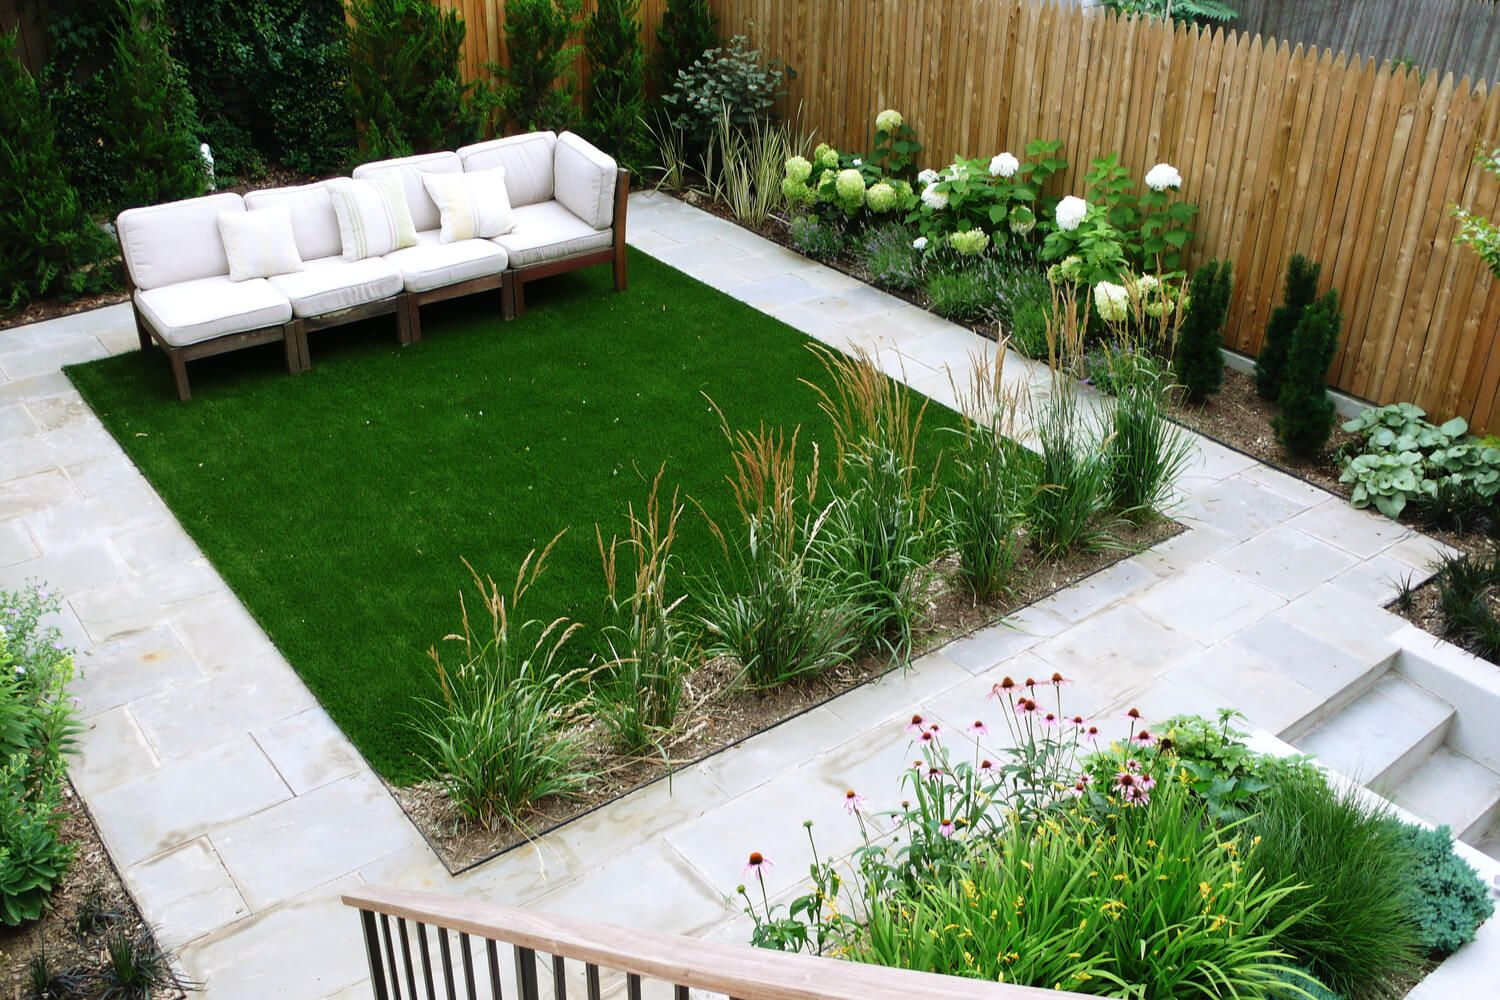 Pin By Daniel Clements On Yard Small Backyard Landscaping Patio Landscaping Garden Landscape Design